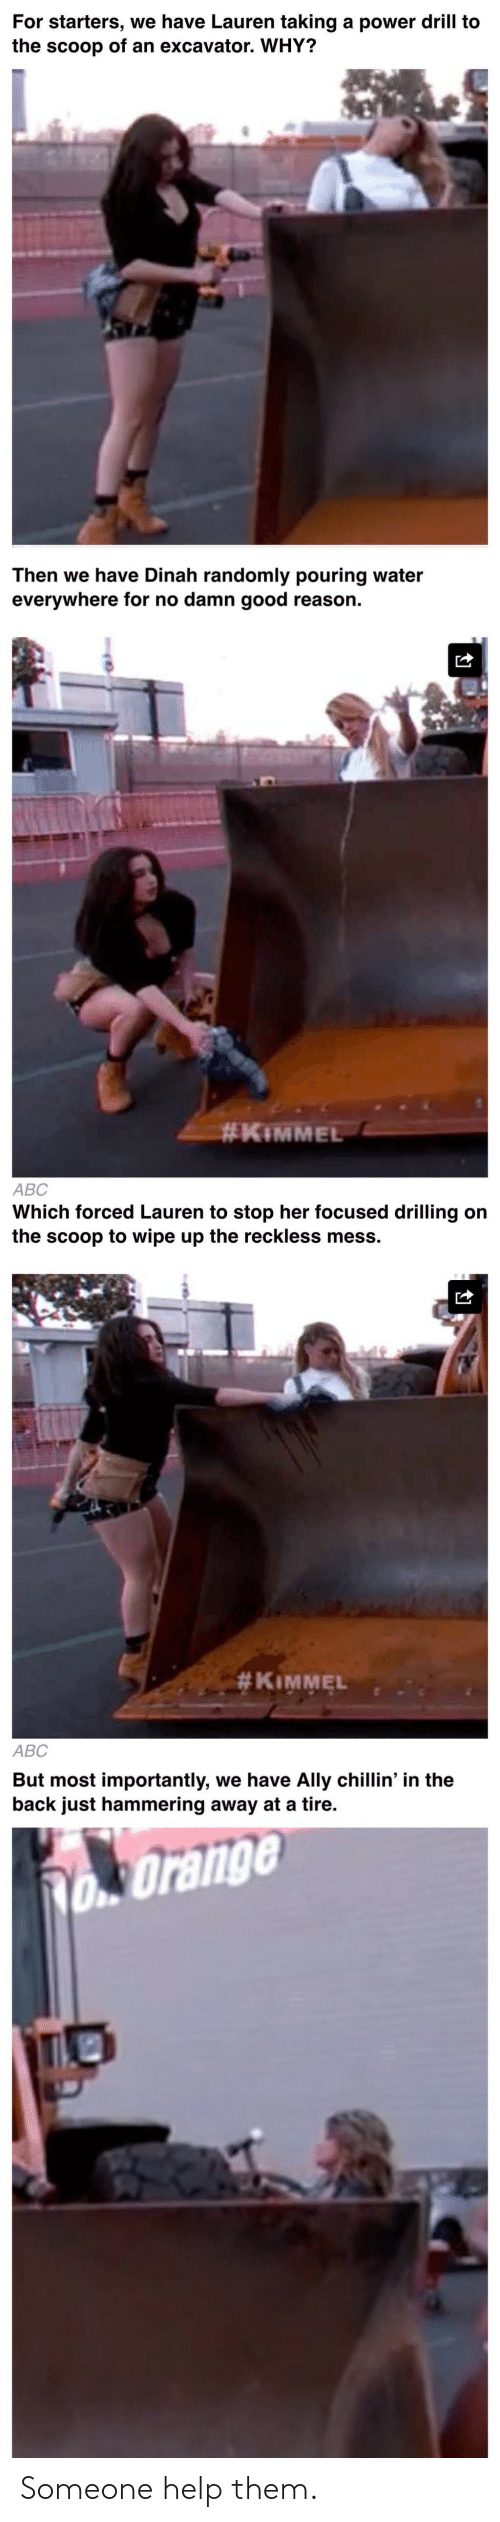 Abc, Ally, and Good: For starters, we have Lauren taking a power drill to  the scoop of an excavator. WHY?   Then we have Dinah randomly pouring water  everywhere for no damn good reason.  #KiMMEL  ABC   Which forced Lauren to stop her focused drilling on  the scoop to wipe up the reckless mess.  #KIMMEL  ABC   But most importantly, we have Ally chillin' in the  back just hammering away at a tire.  Orange  TIO Someone help them.